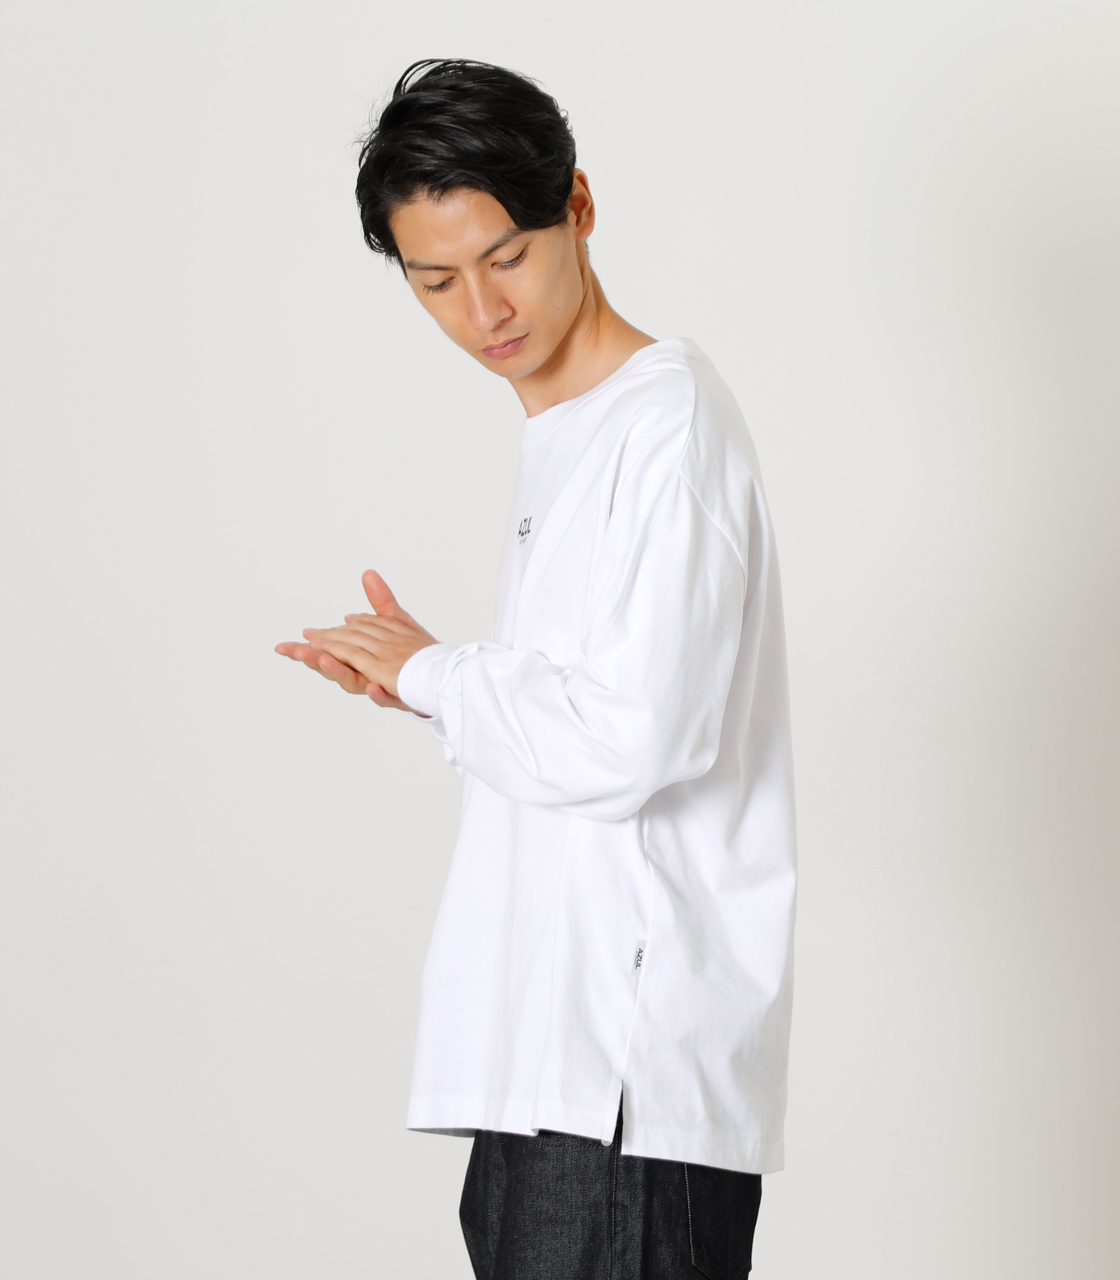 ONS SIMPLE LOGO TEE/ONSシンプルロゴTシャツ 詳細画像 WHT 12